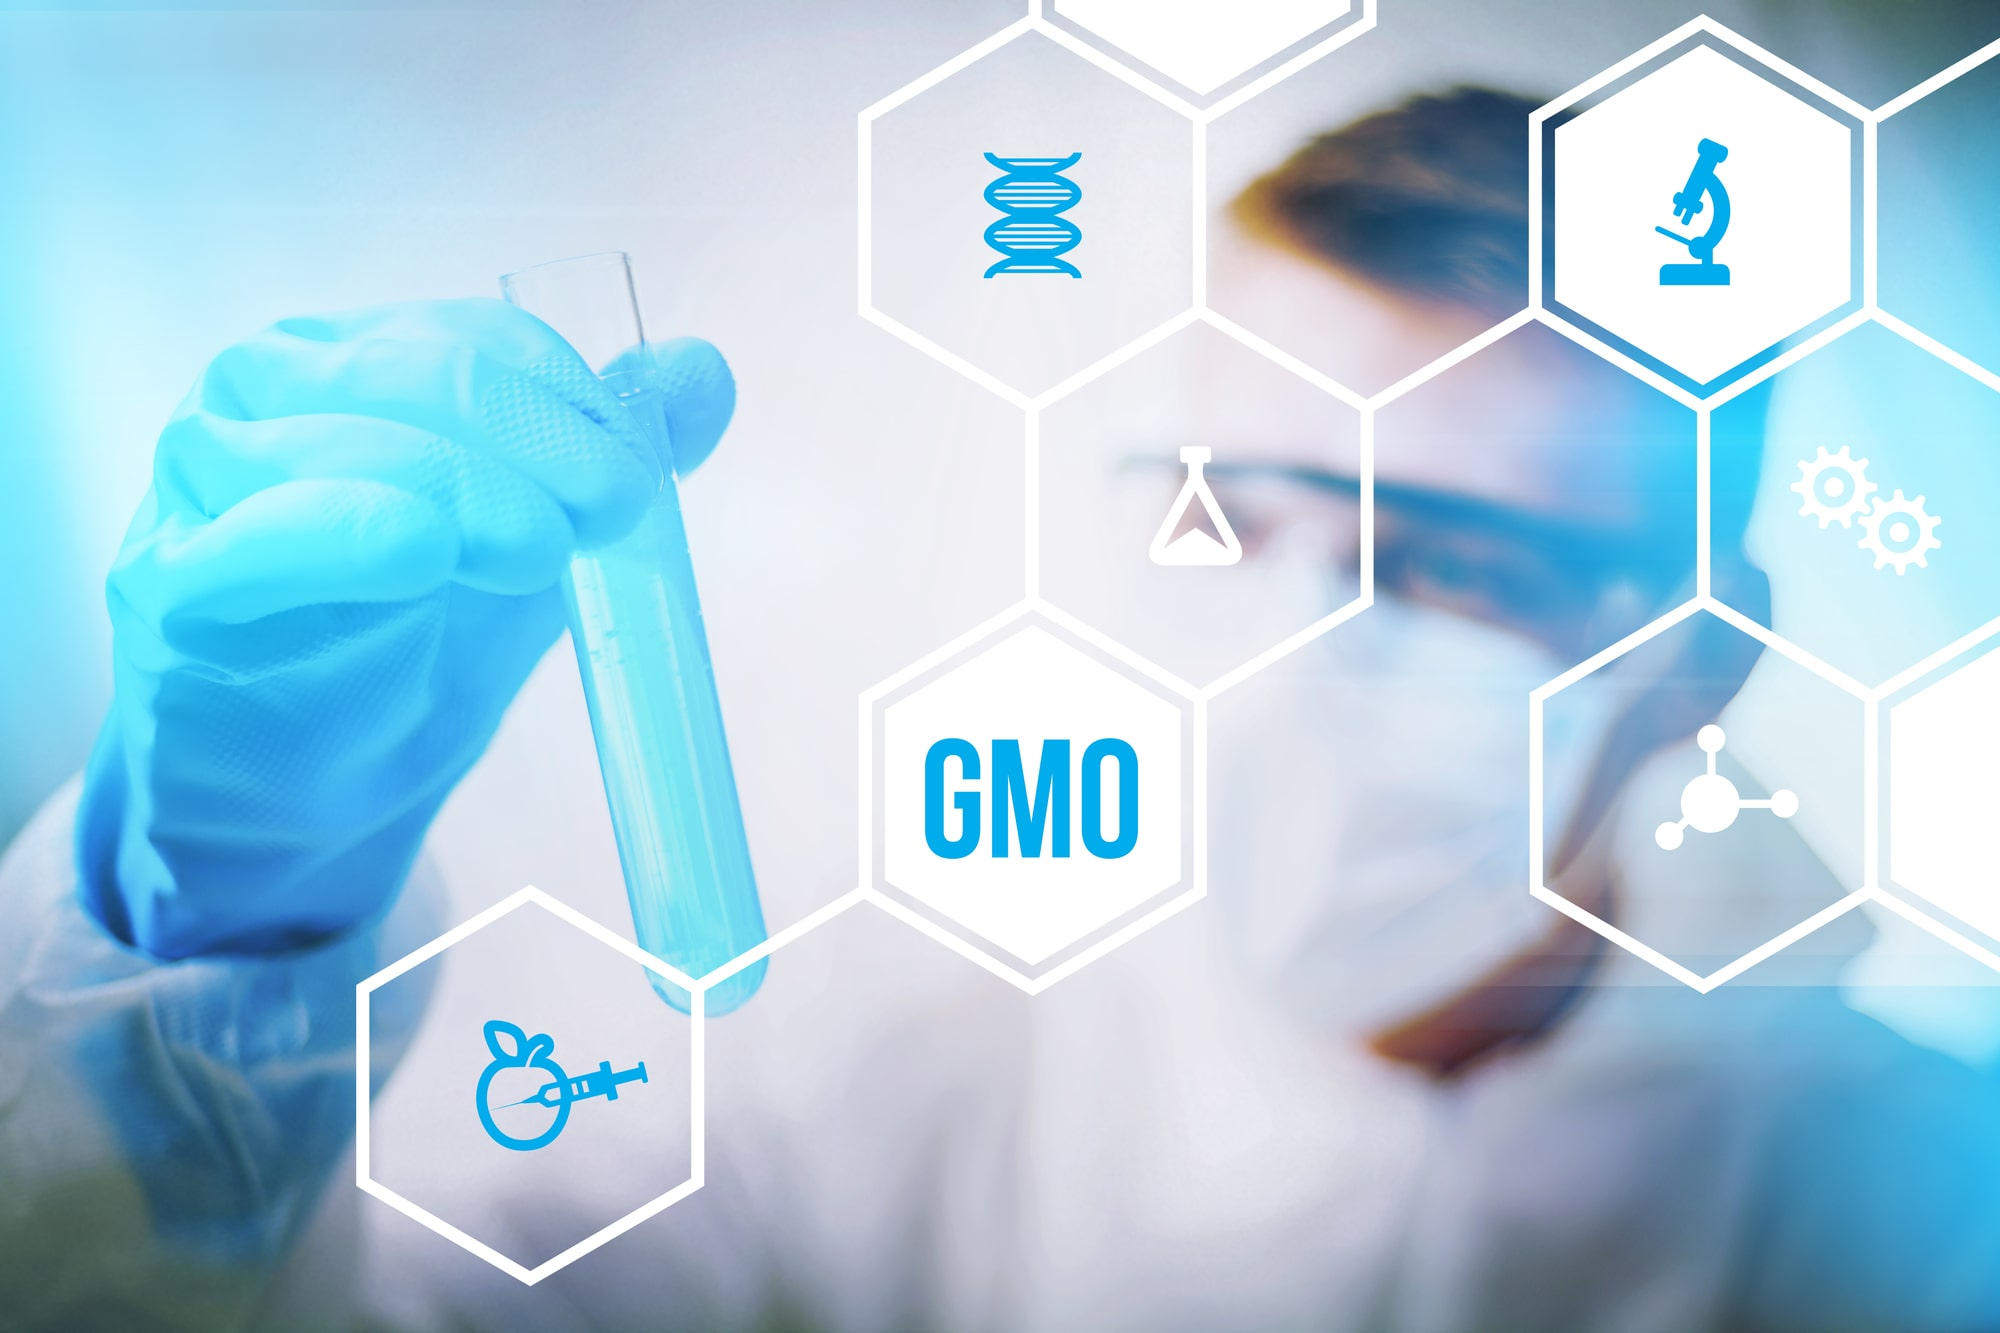 Should we fear GMOs? Take a look – all our food is genetically modified